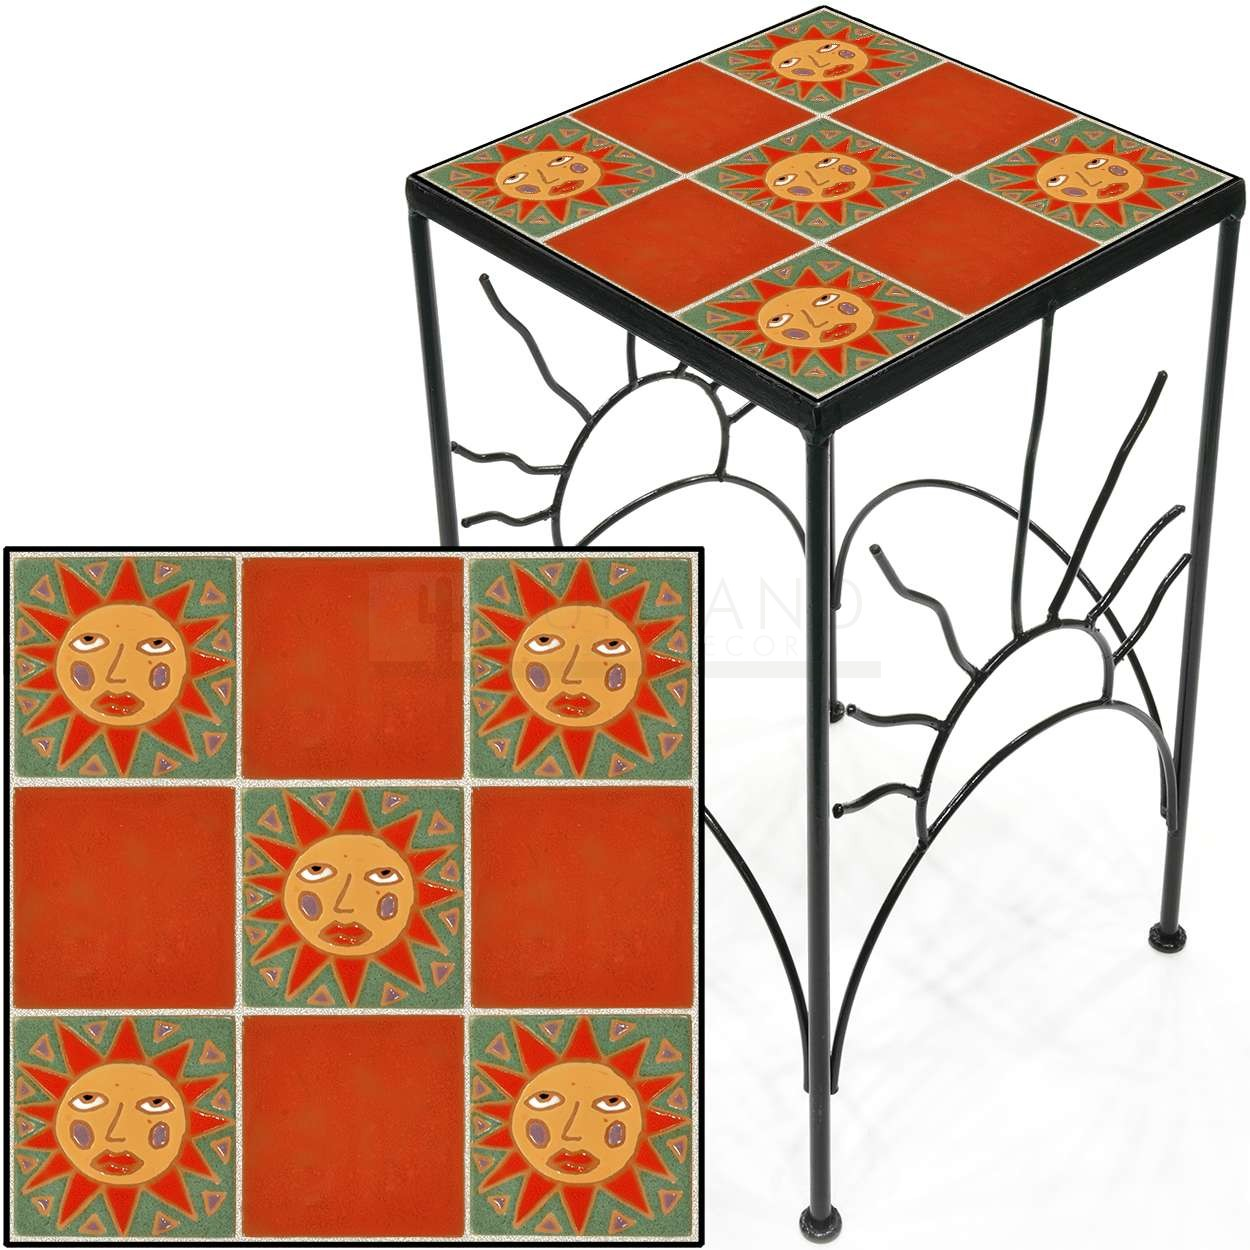 tile accent table sun faces orange tall metal save square and prefinished hardwood flooring industrial lamp oval lucite coffee white lacquer side bedroom nightstand lamps kitchen